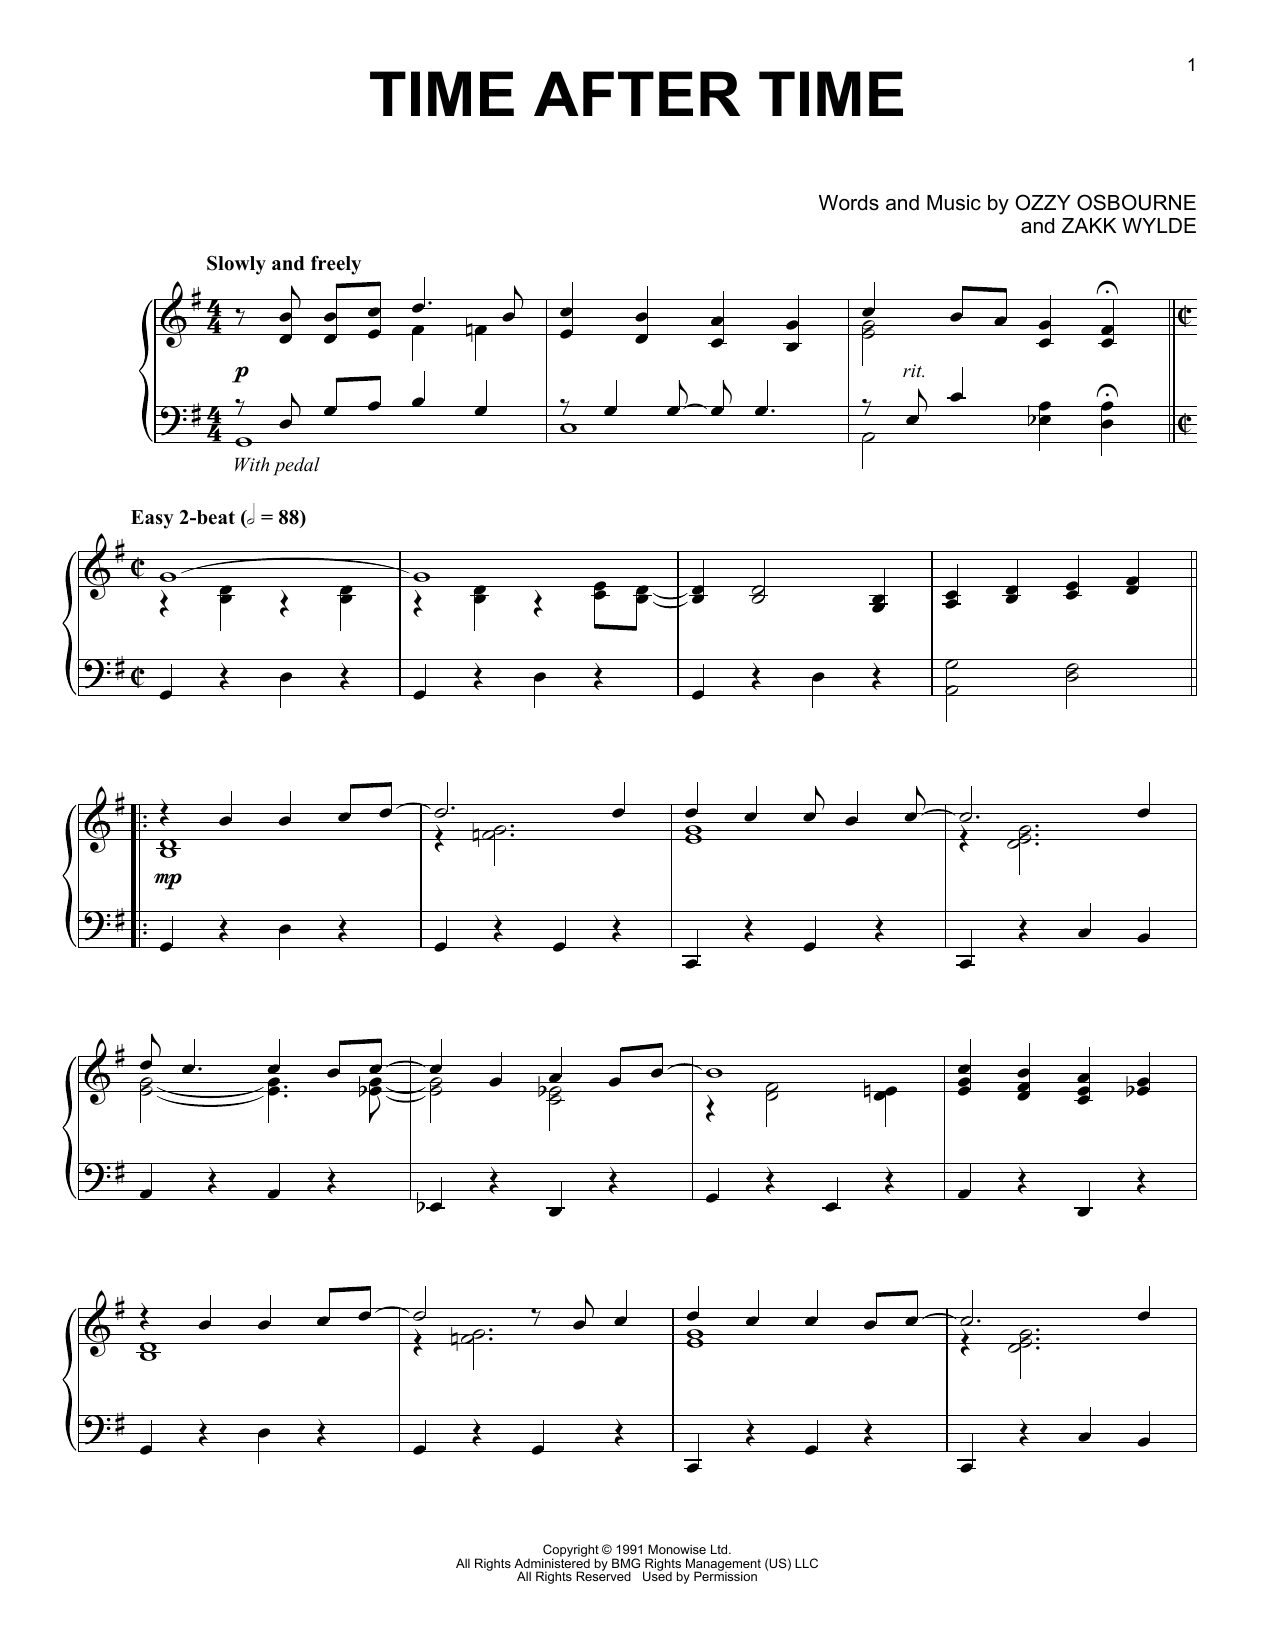 Ozzy Osbourne Time After Time [Jazz version] sheet music notes and chords. Download Printable PDF.